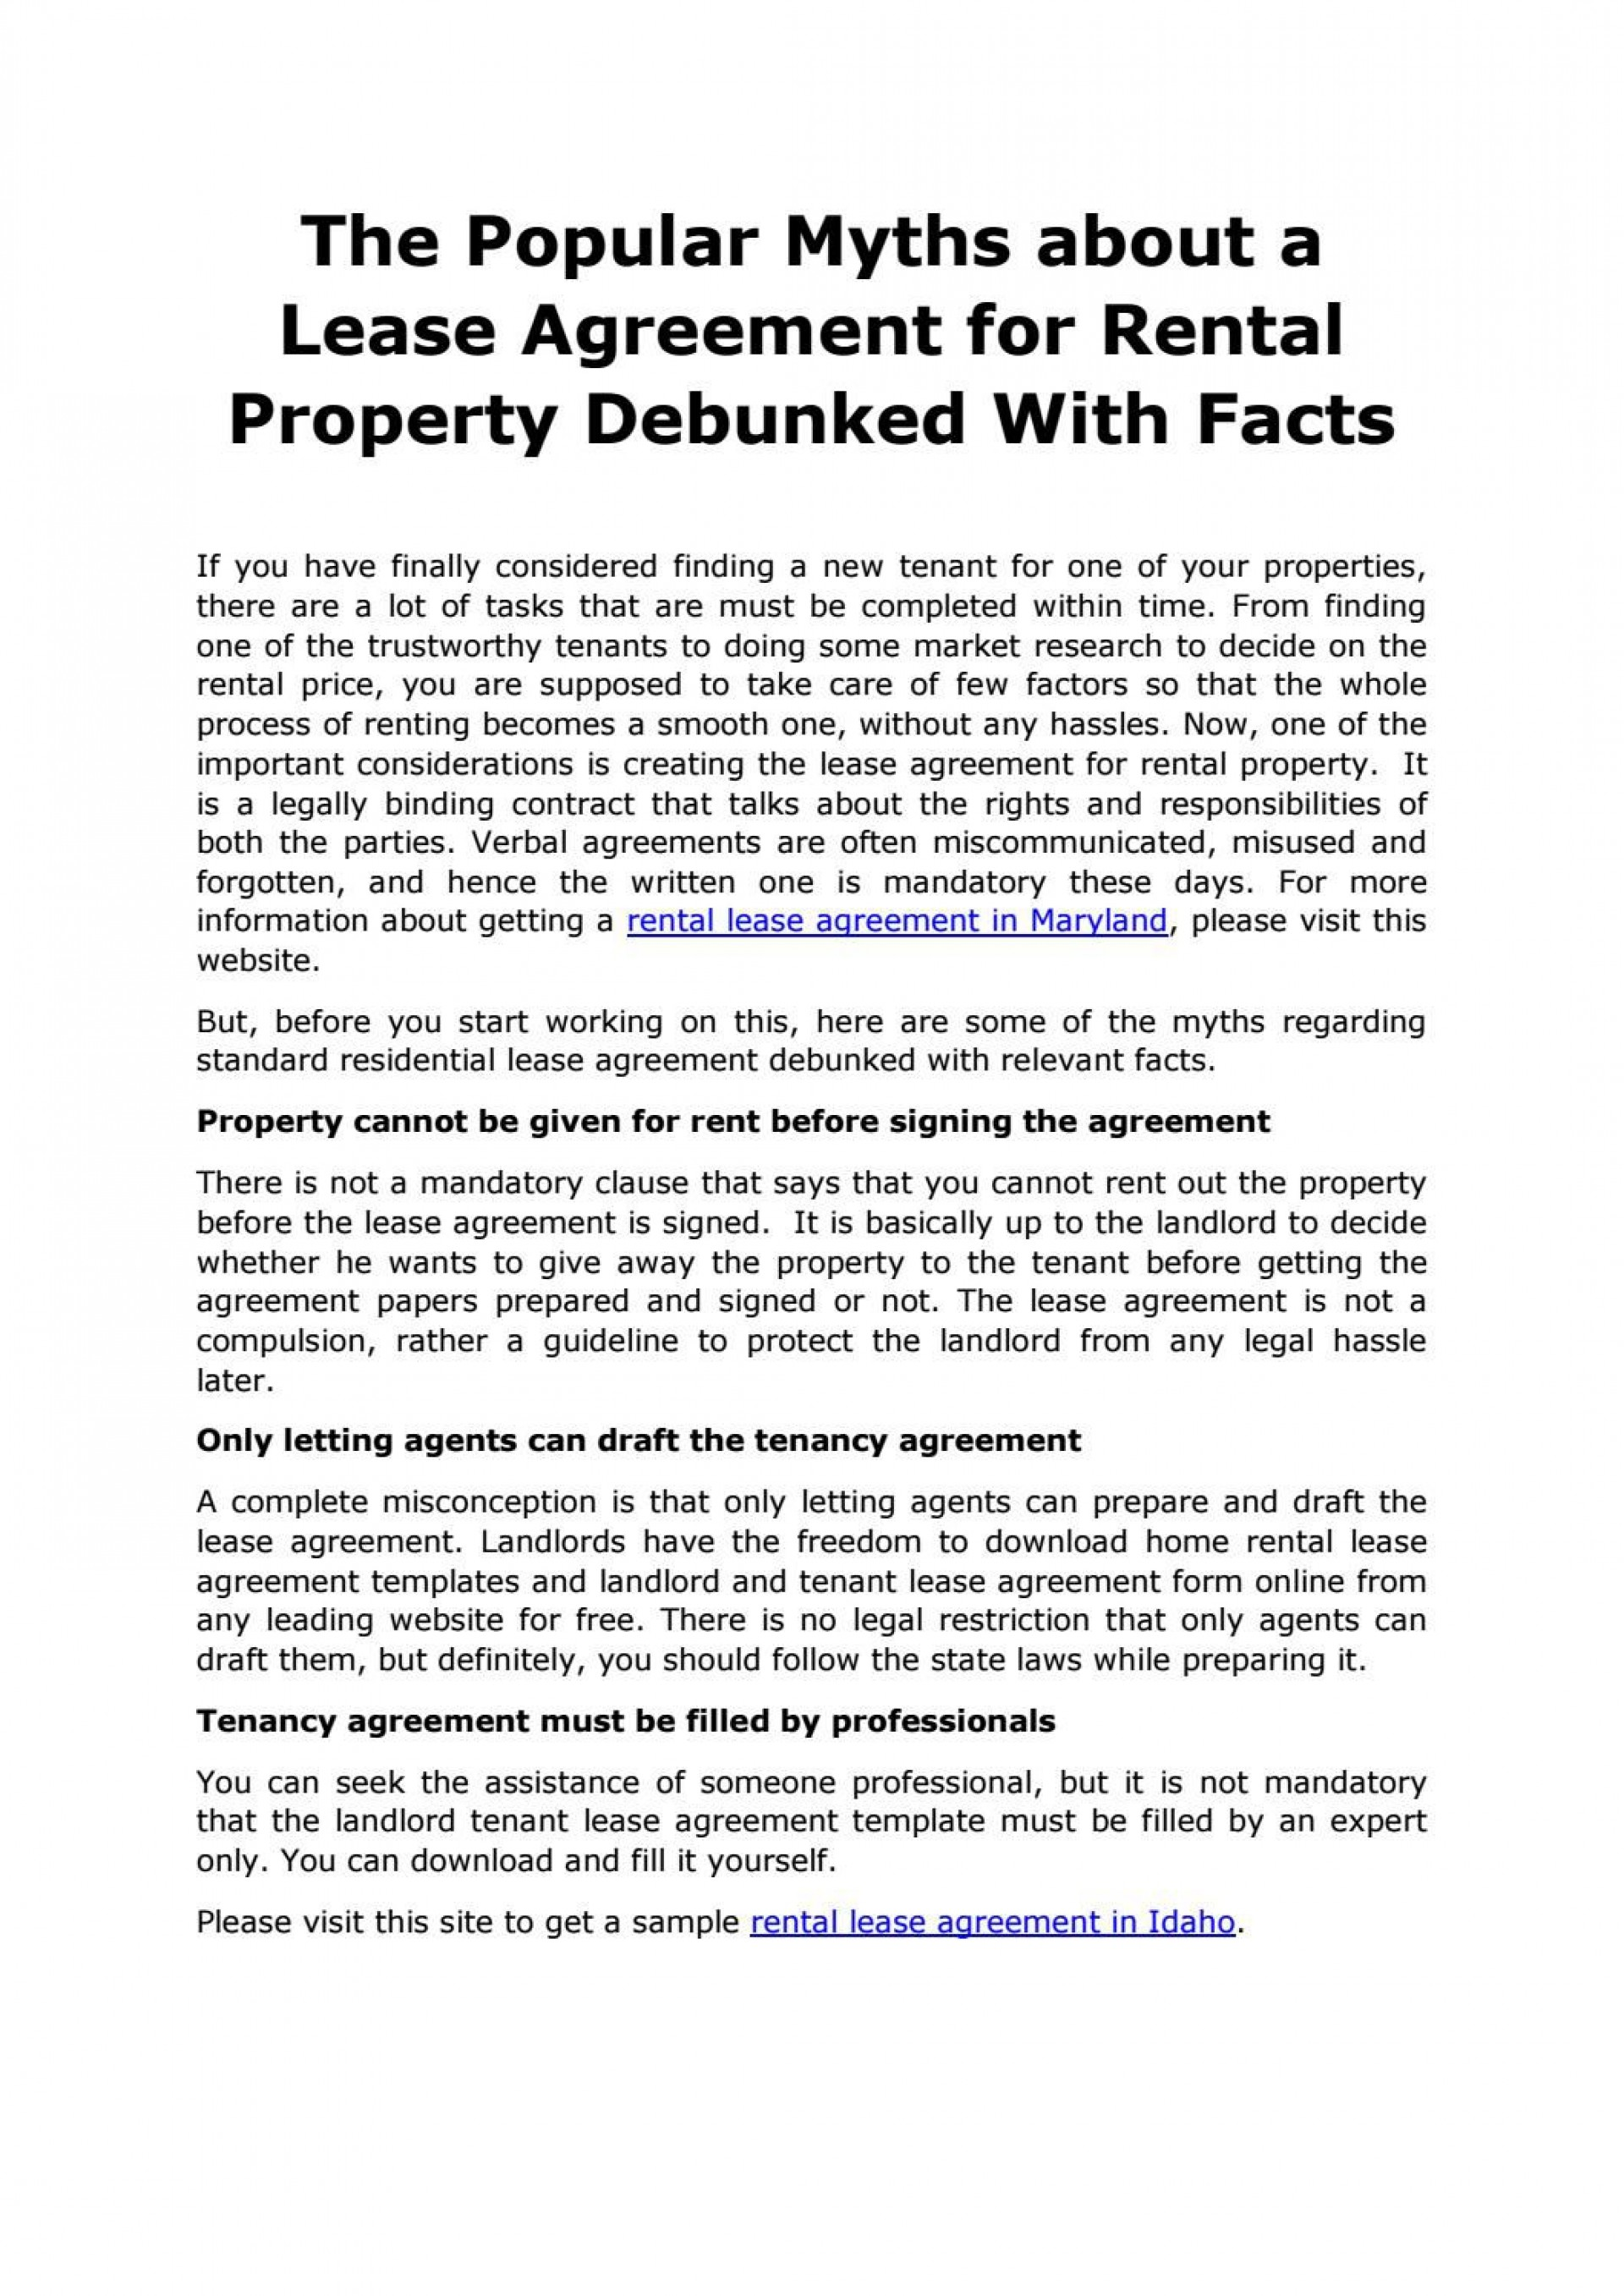 007 Amazing Rental Lease Template Free Download Inspiration  California Agreement Florida Word Format1920